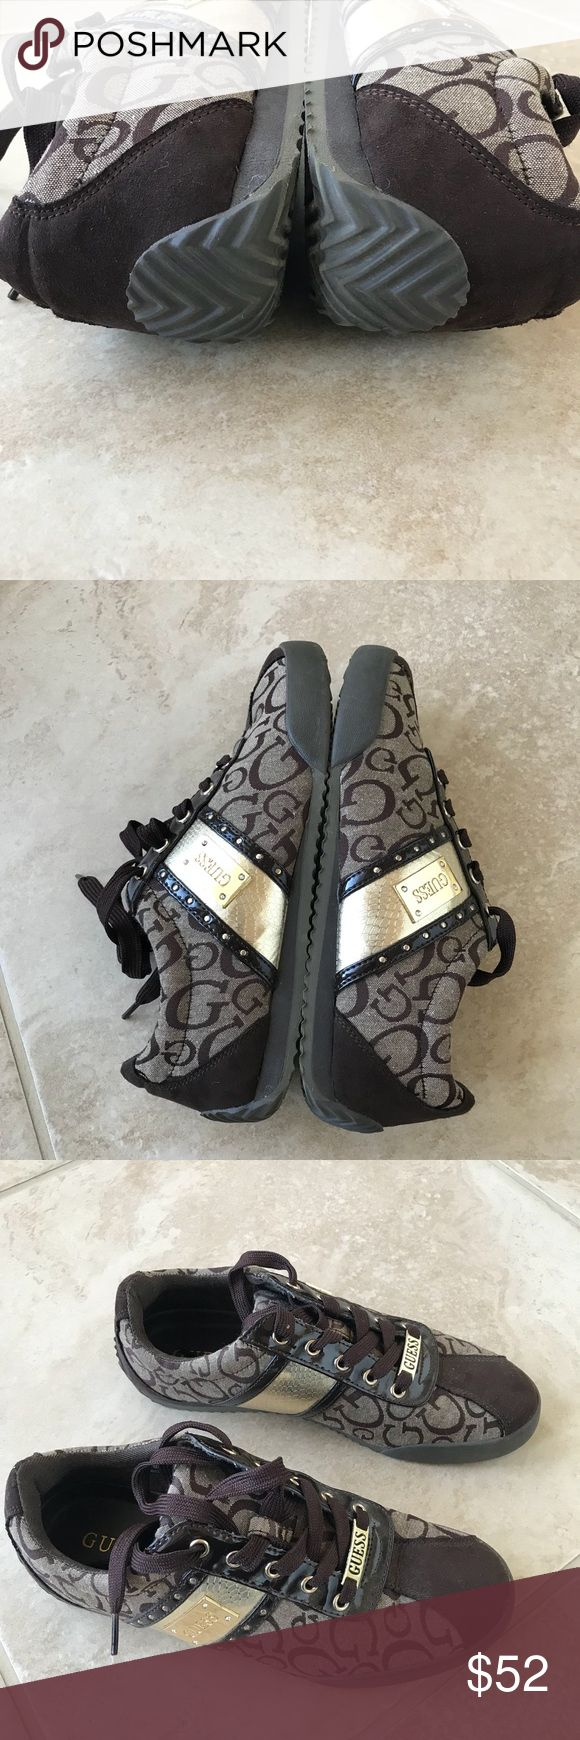 Guess sneakers Brand new without tag Guess Shoes Sneakers